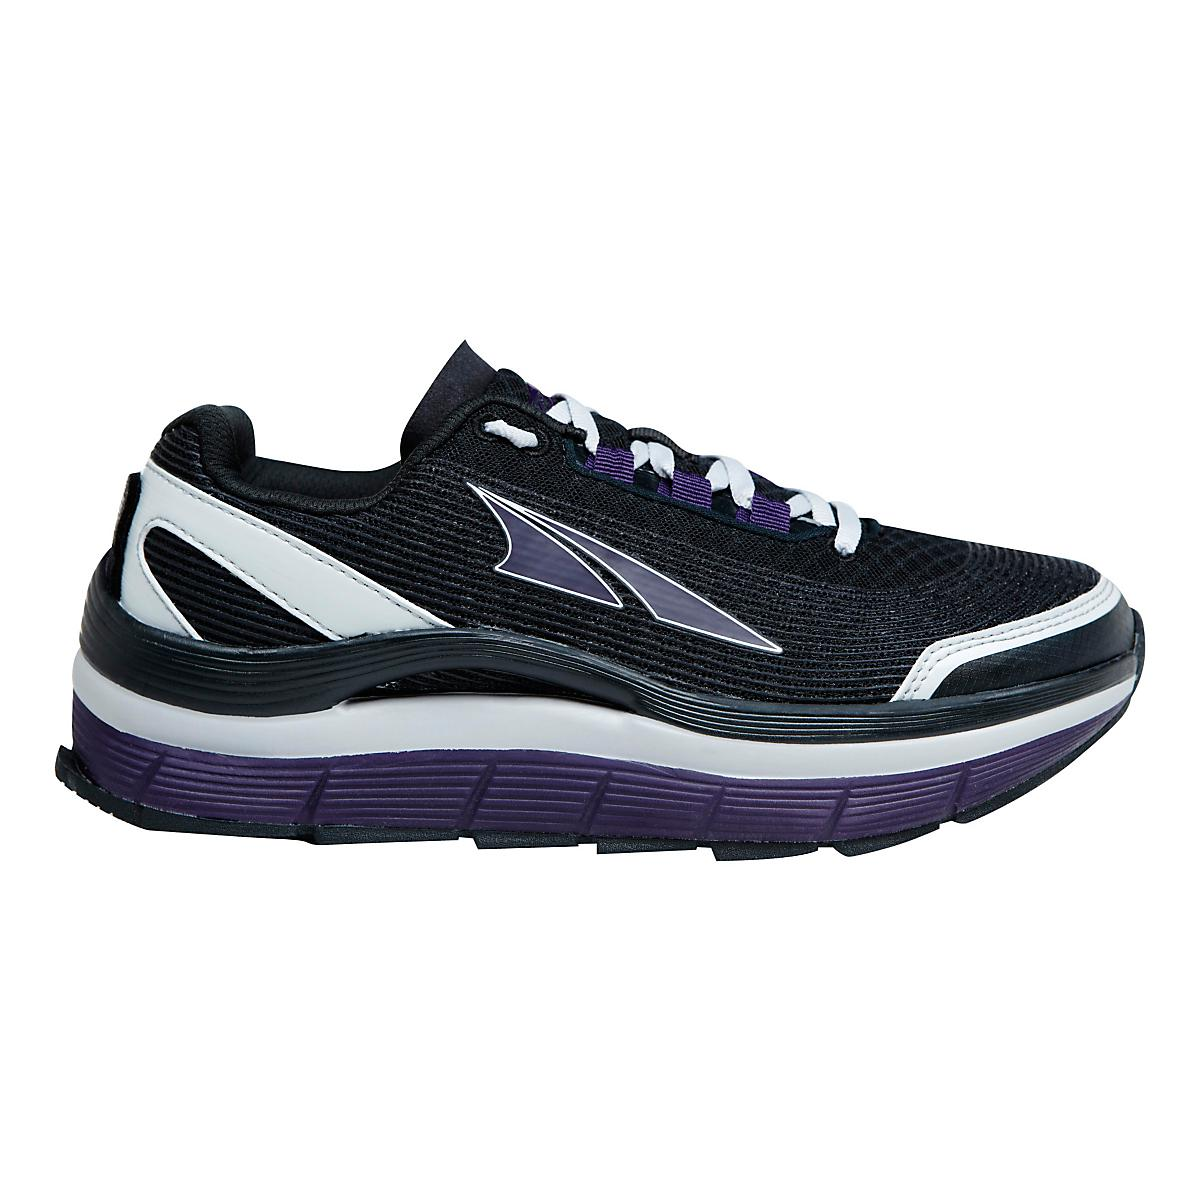 d33ba61af3990 Womens Altra Olympus 1.5 Trail Running Shoe at Road Runner Sports